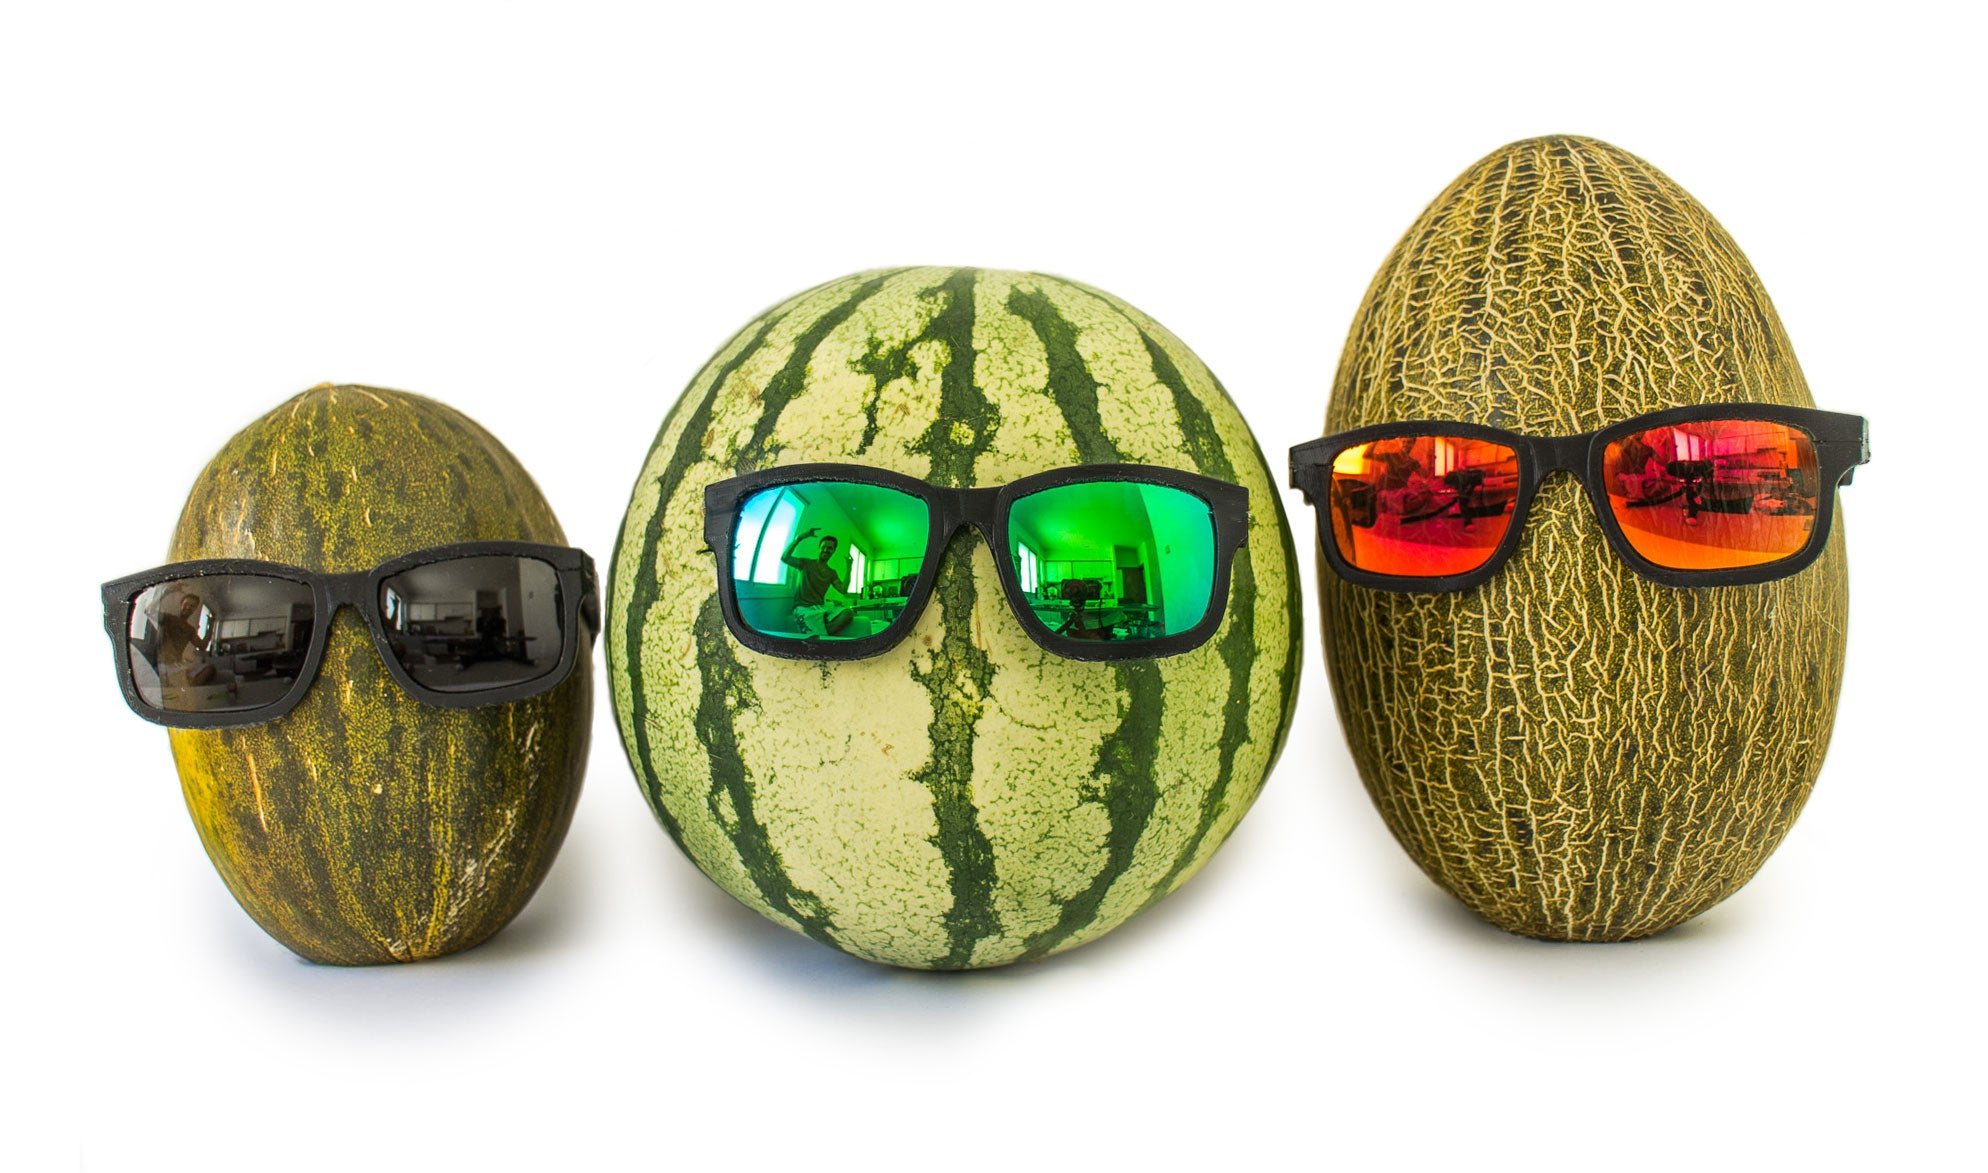 Melons with 3D printed sunglasses on